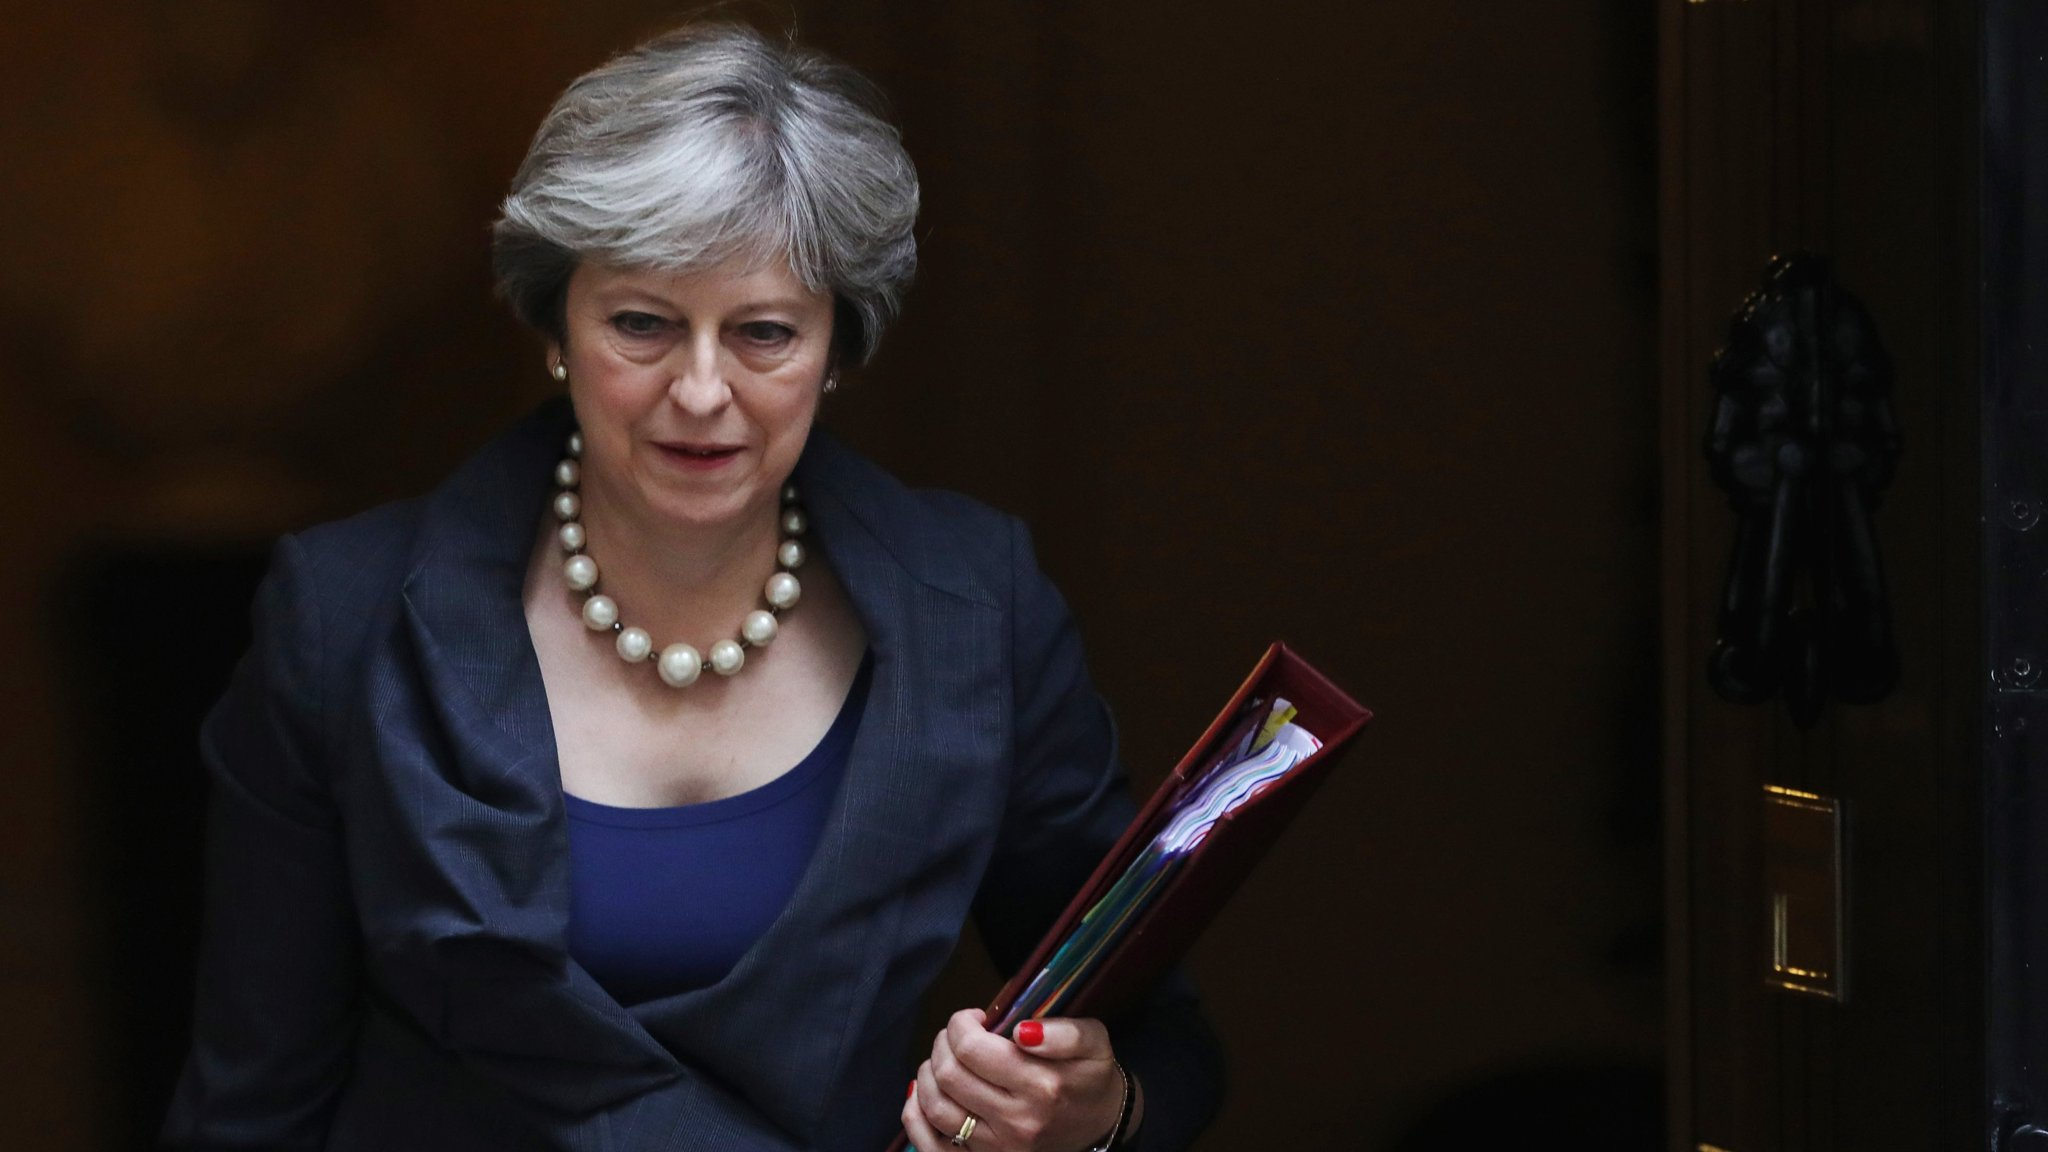 May urges Merkel to end stand-off over Brexit | Financial Times